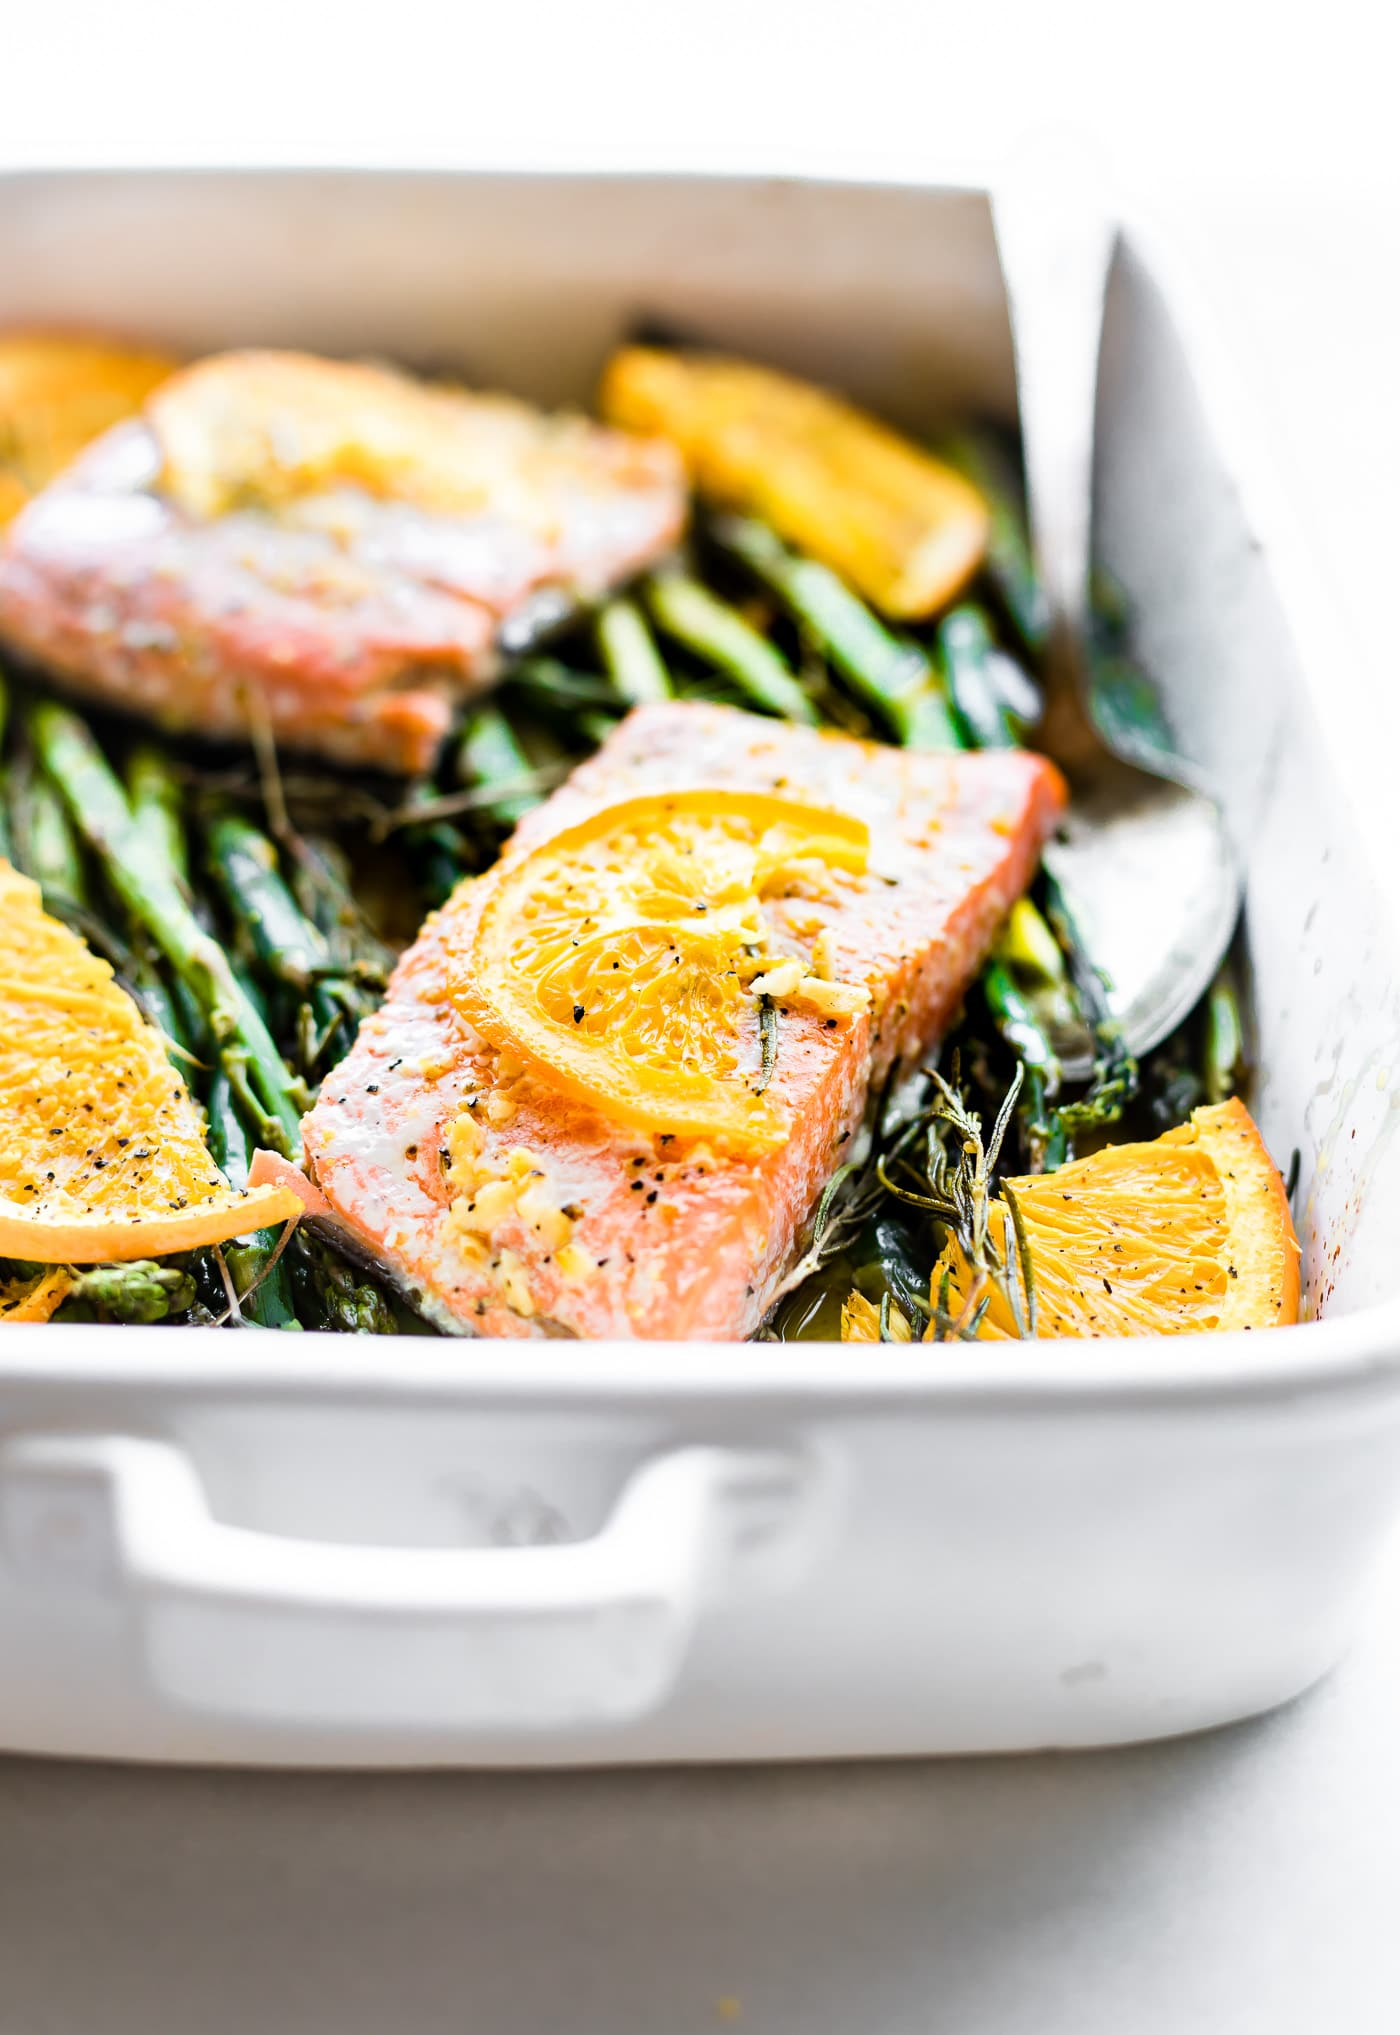 This Rosemary Citrus Baked salmon is a healthy one pan meal ready in 20 minutes.  Fresh Rosemary, orange juice, lemon, veggies, sockeye salmon, olive oil, and spices. A deliciously nourishing meal that's simple to make. #onepanmeal #healthy